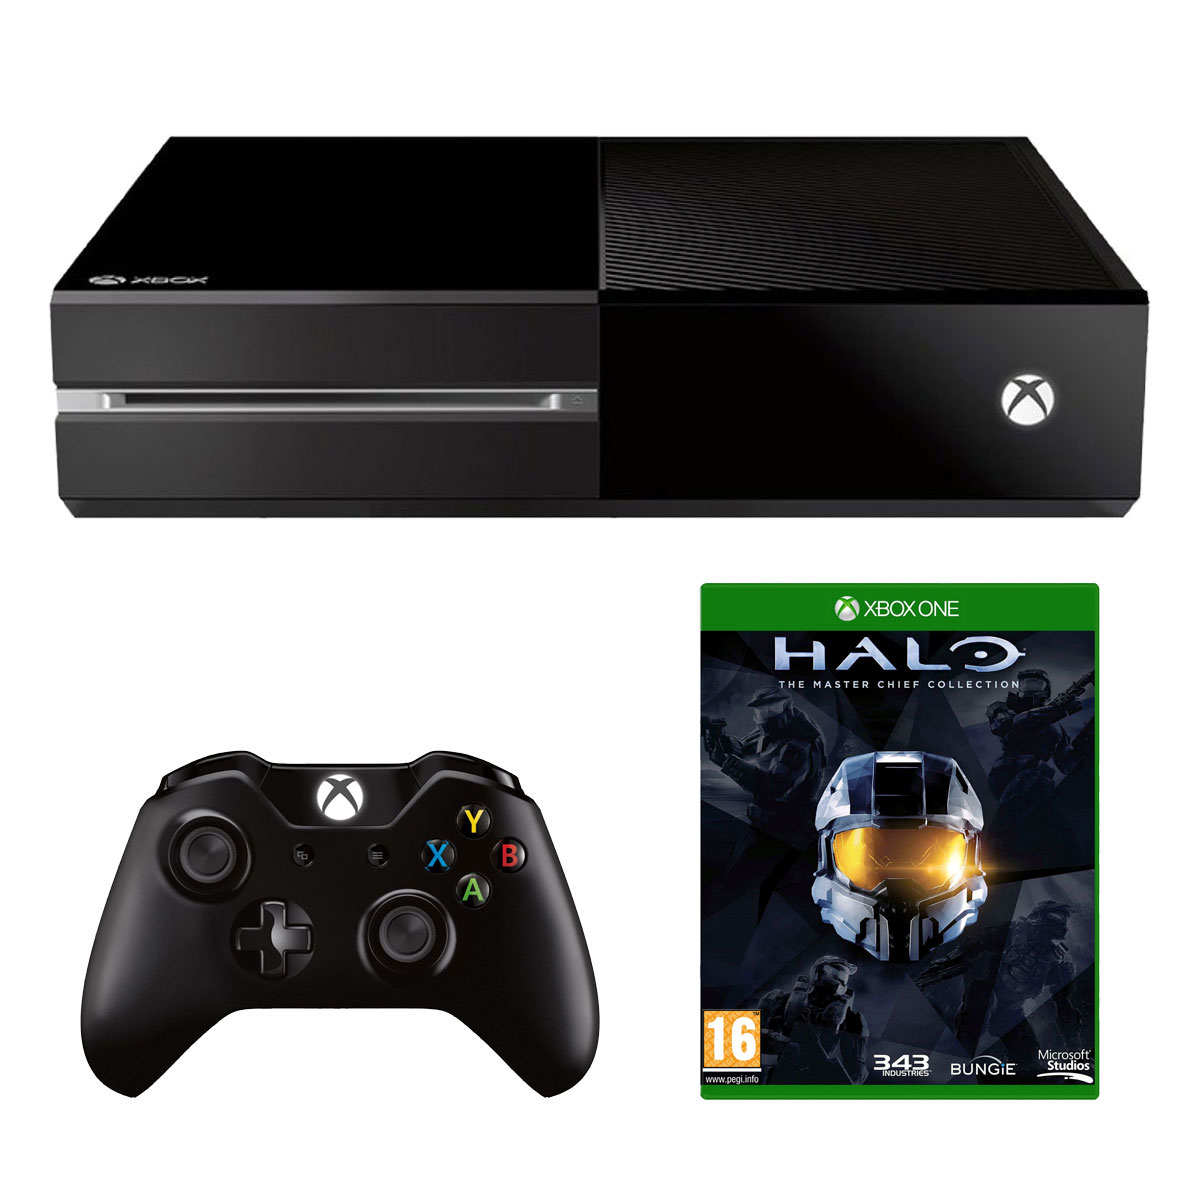 Console De Jeux Pas Chere Microsoft Xbox One Halo The Master Chief Collection